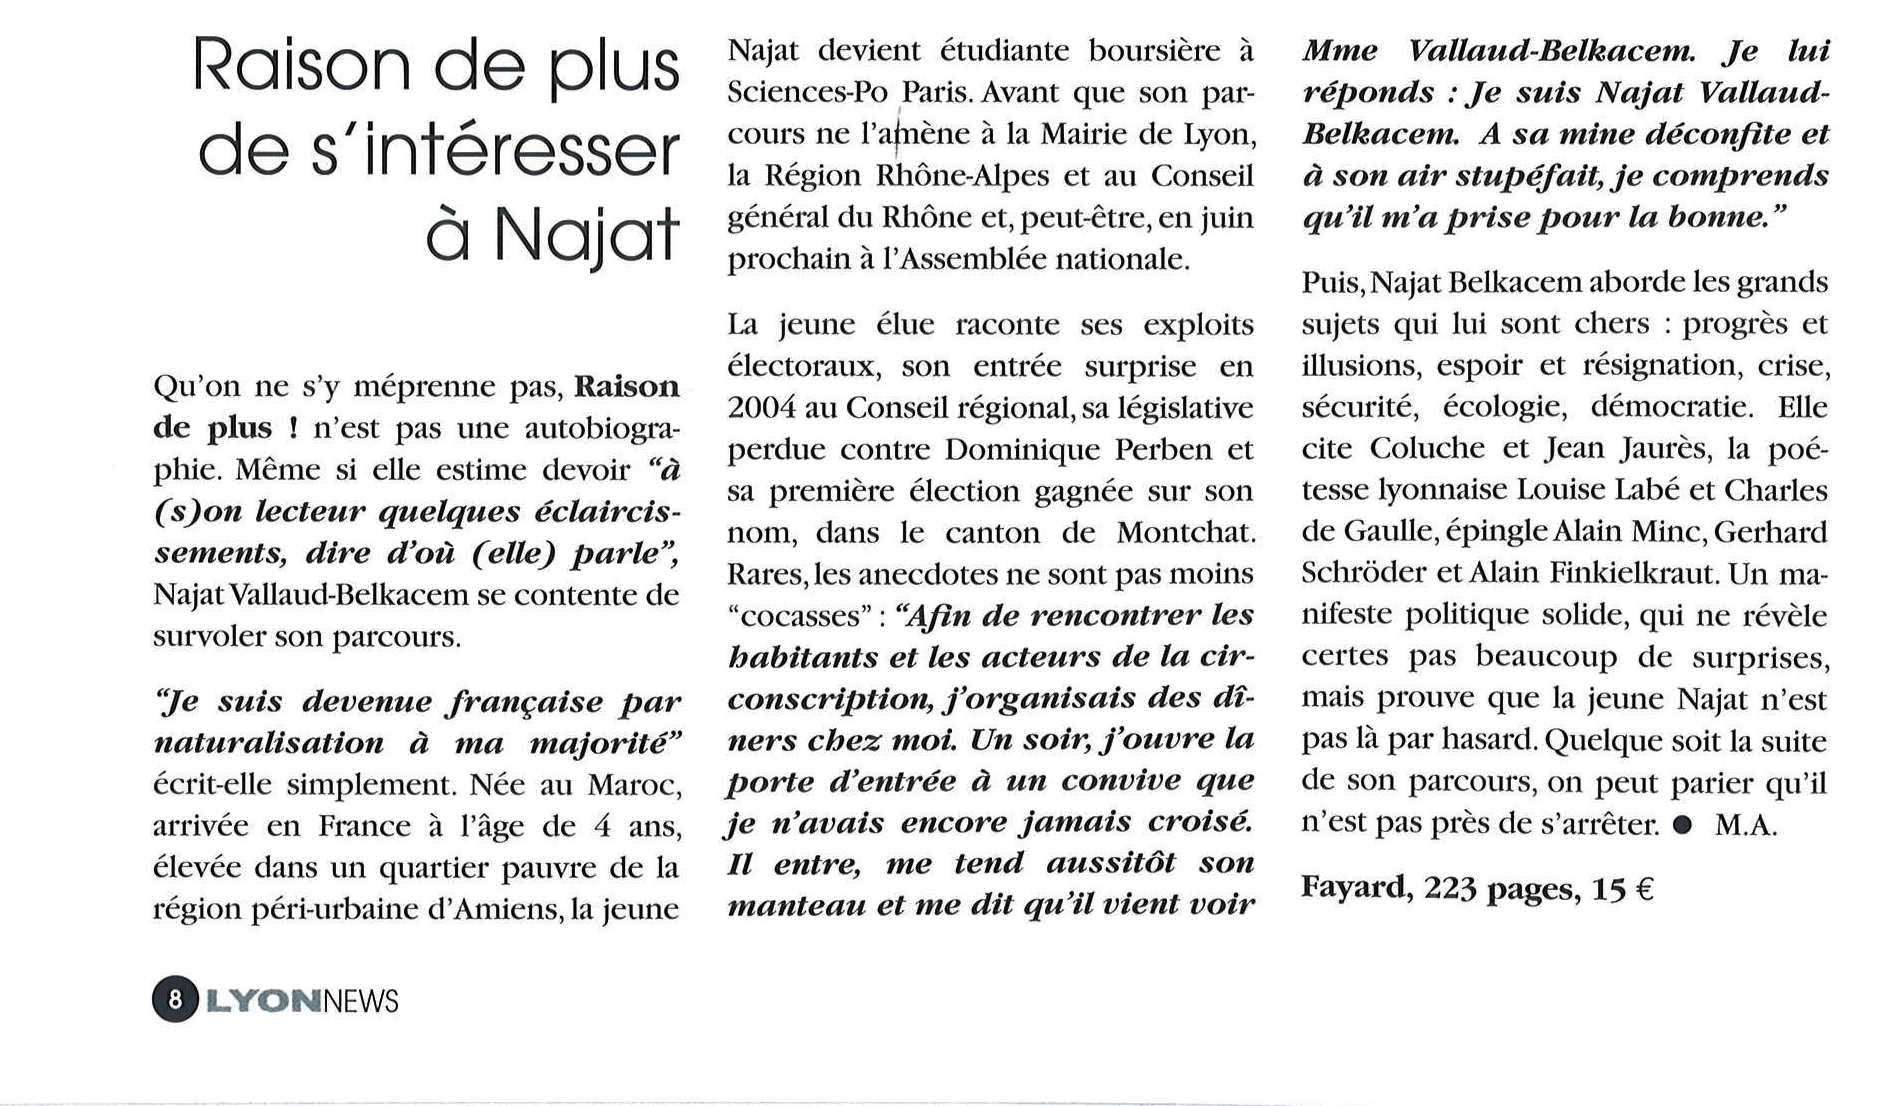 Lyon news Avril 2012-raison de plus